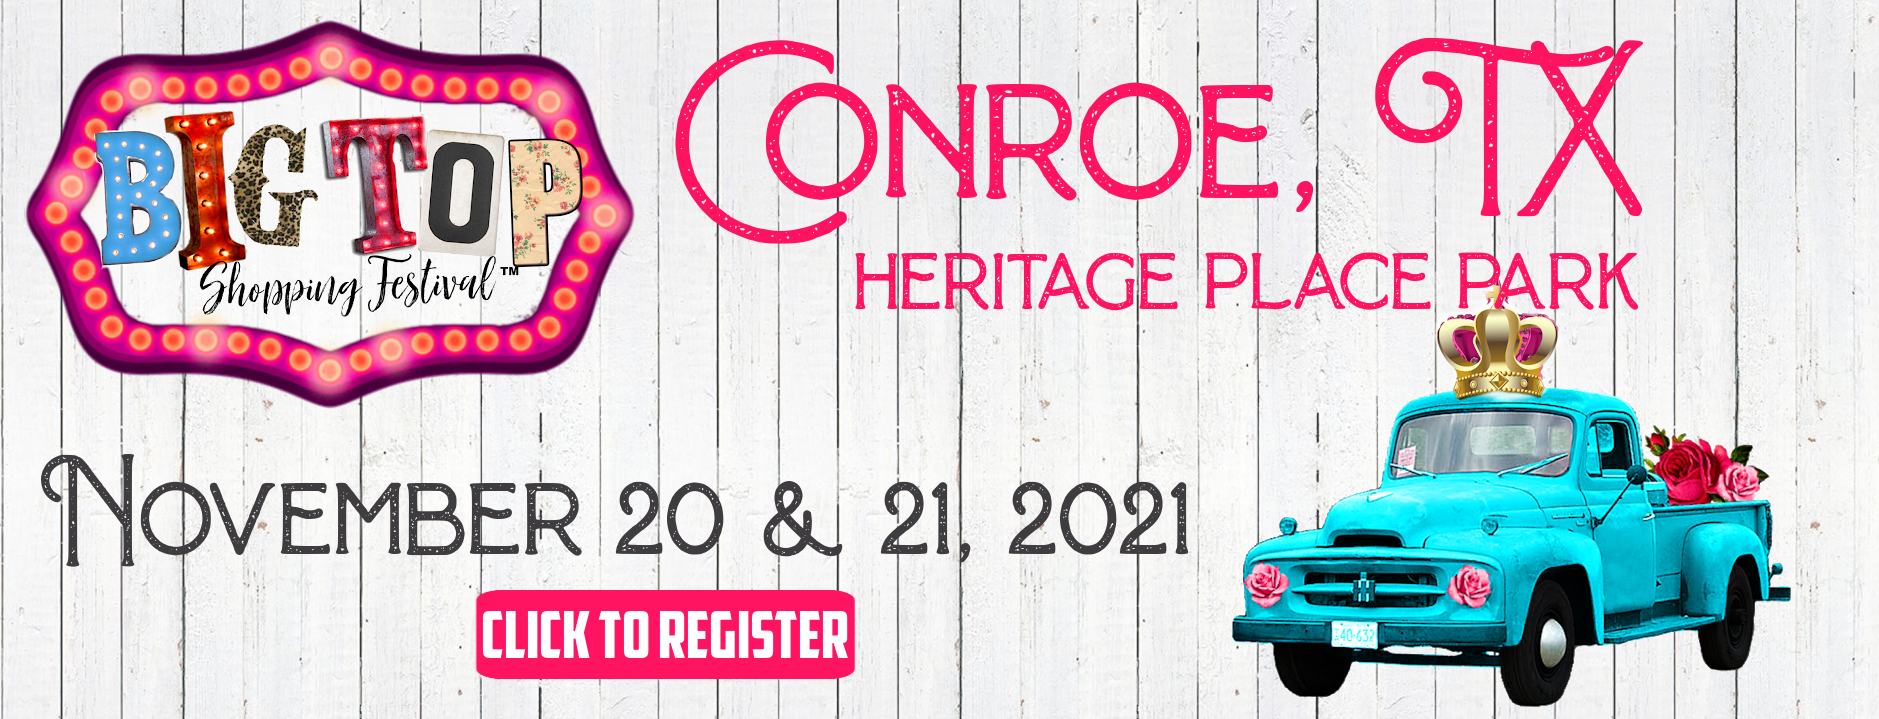 click-to-register-conroe.png